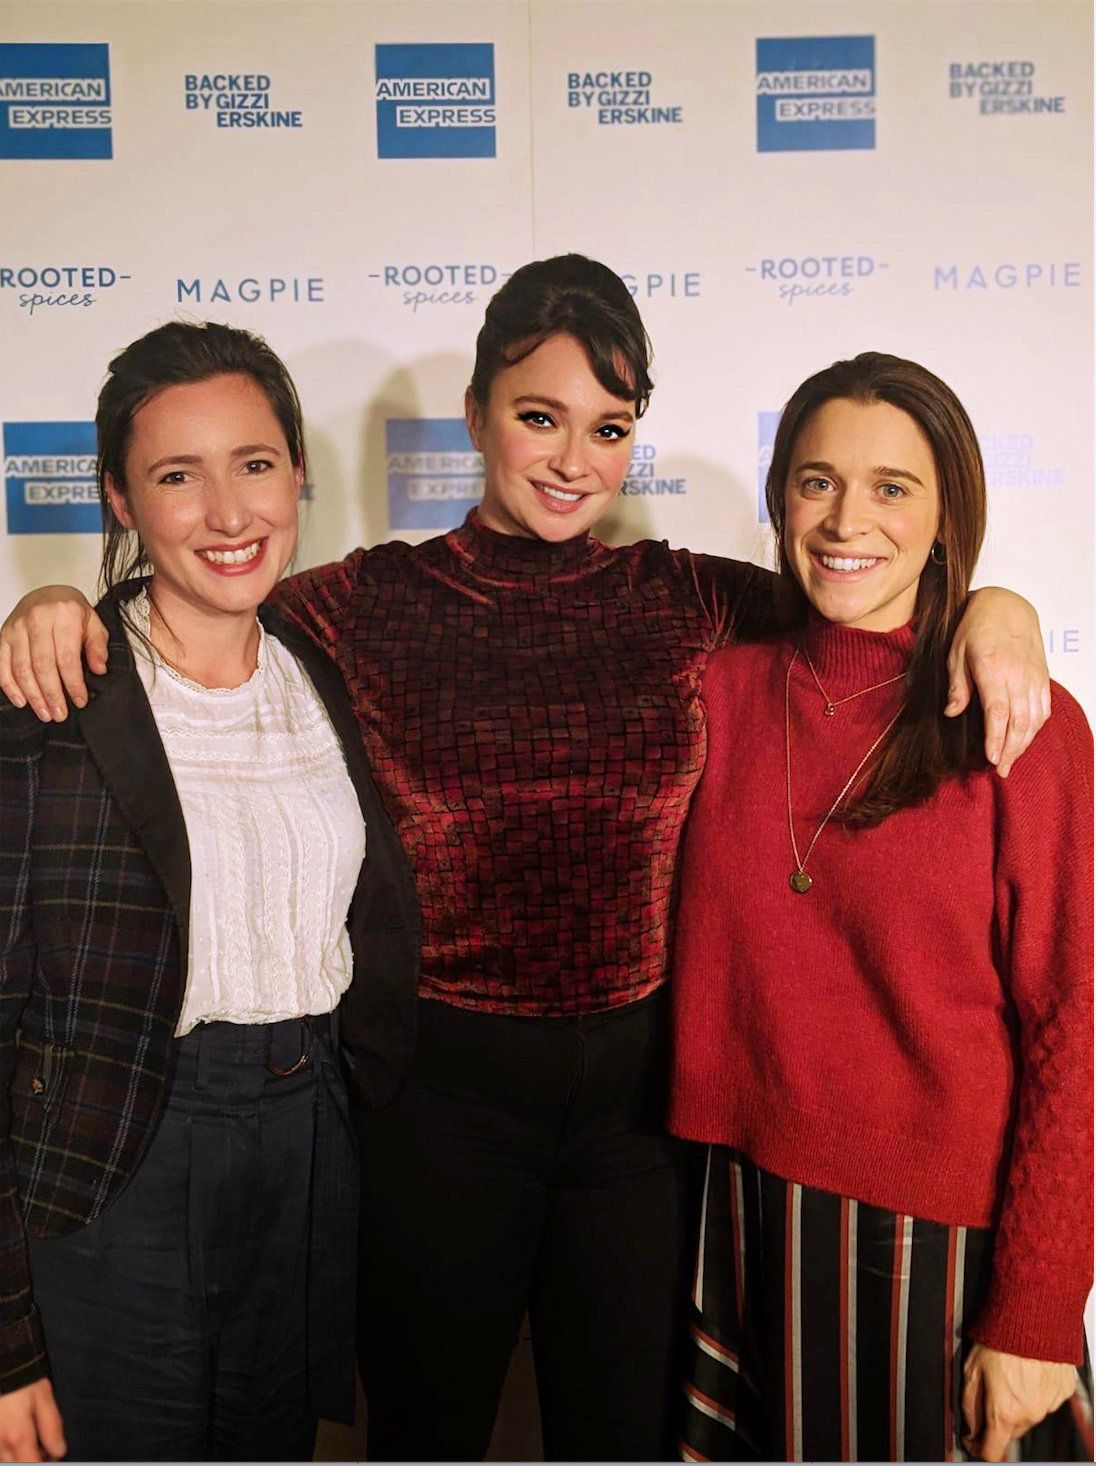 How The Backing Of Gizzi Erskine Motivated This Small Business To Go Bigger And